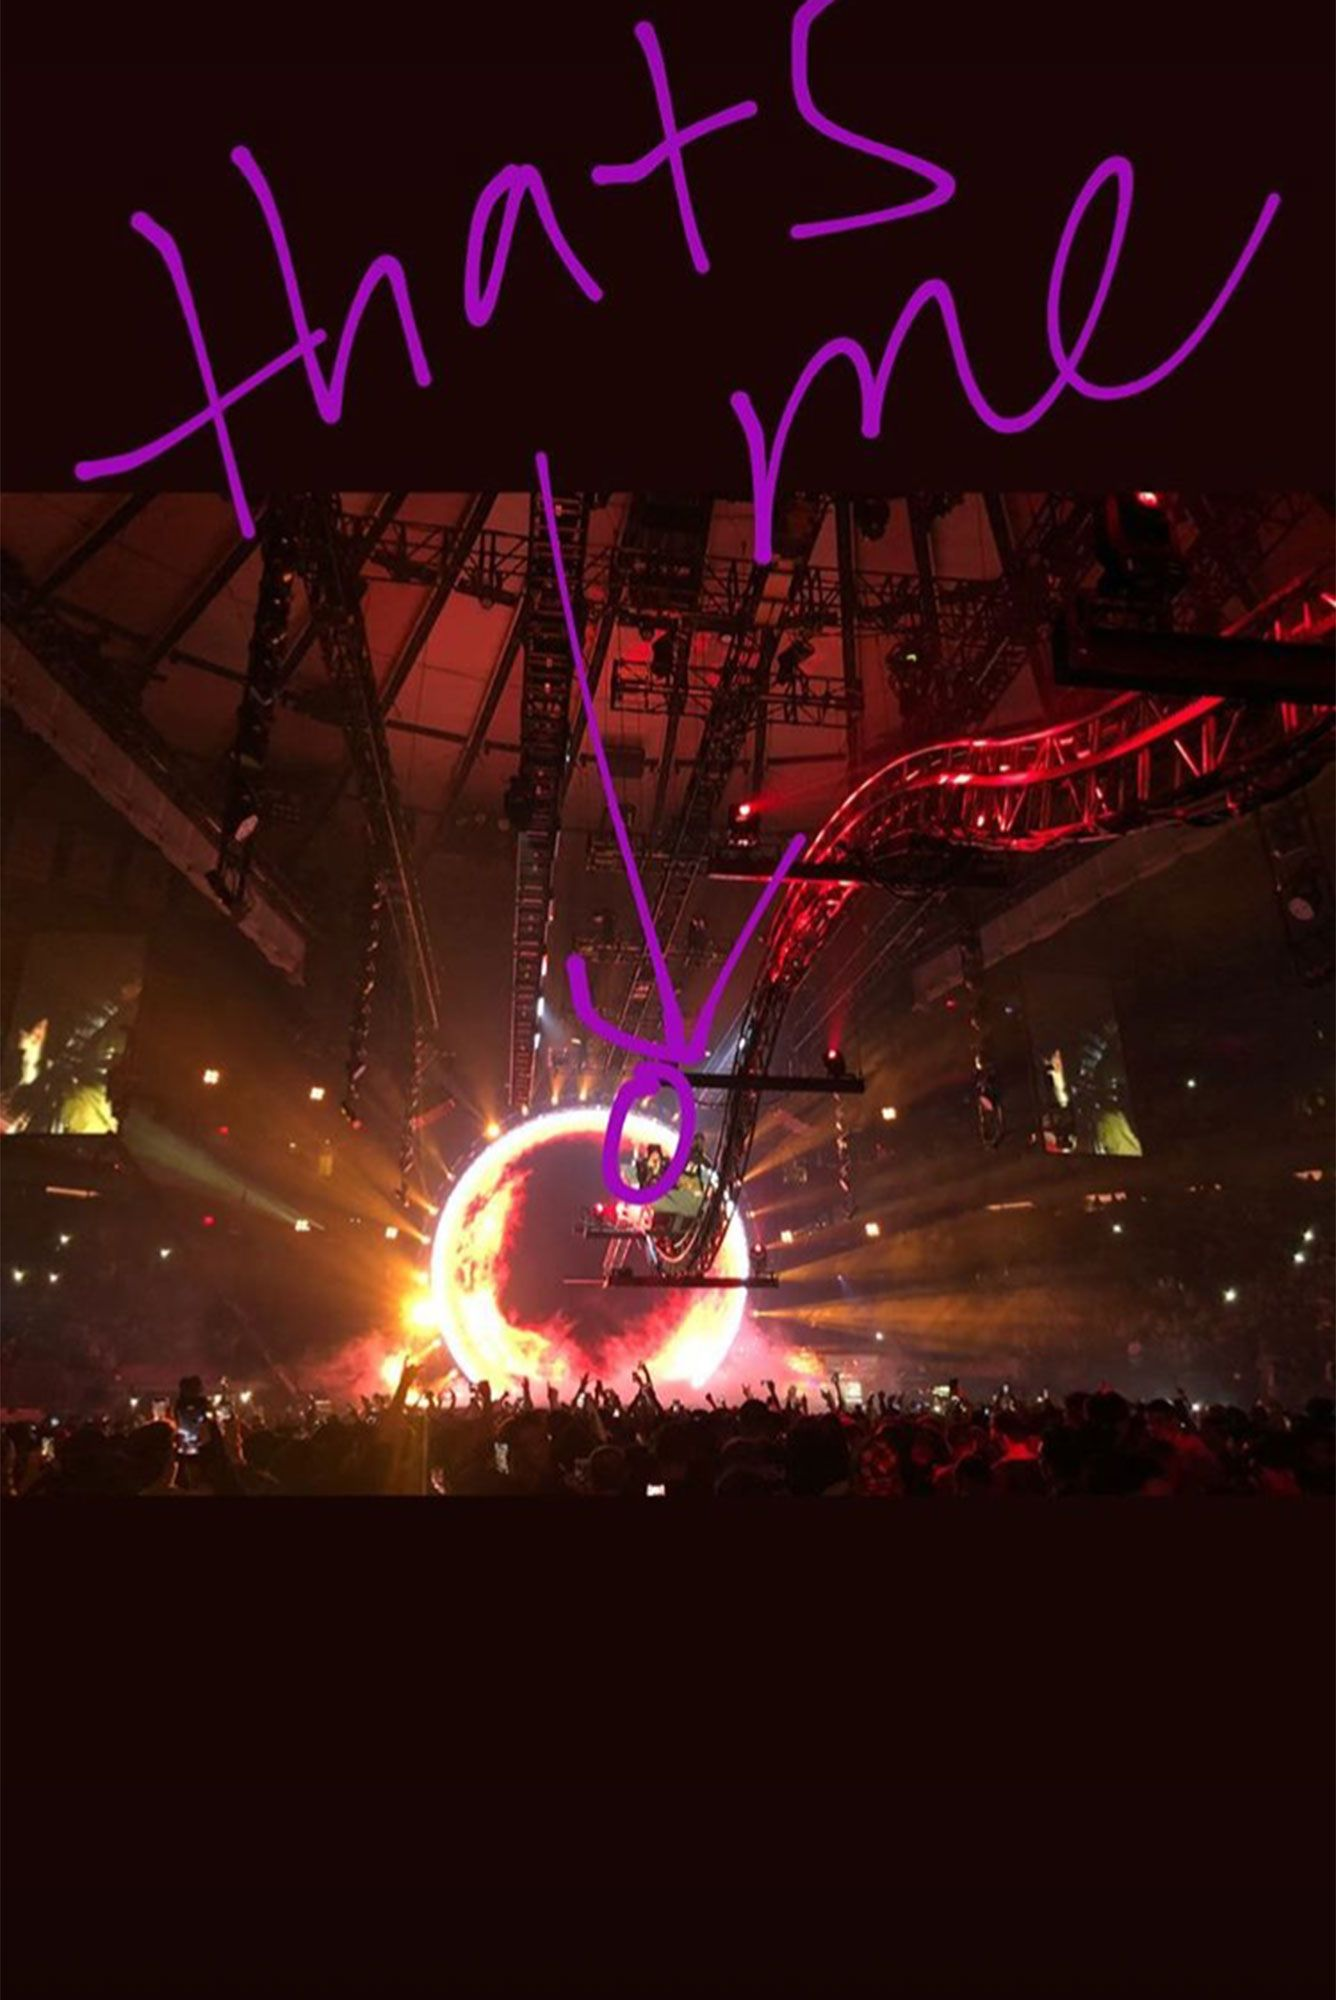 Kylie Jenner Entertains The Crowd With Travis Scott During Concert Watch Her Sky High Appearance Travis Scott Concert Travis Scott Kylie Jenner